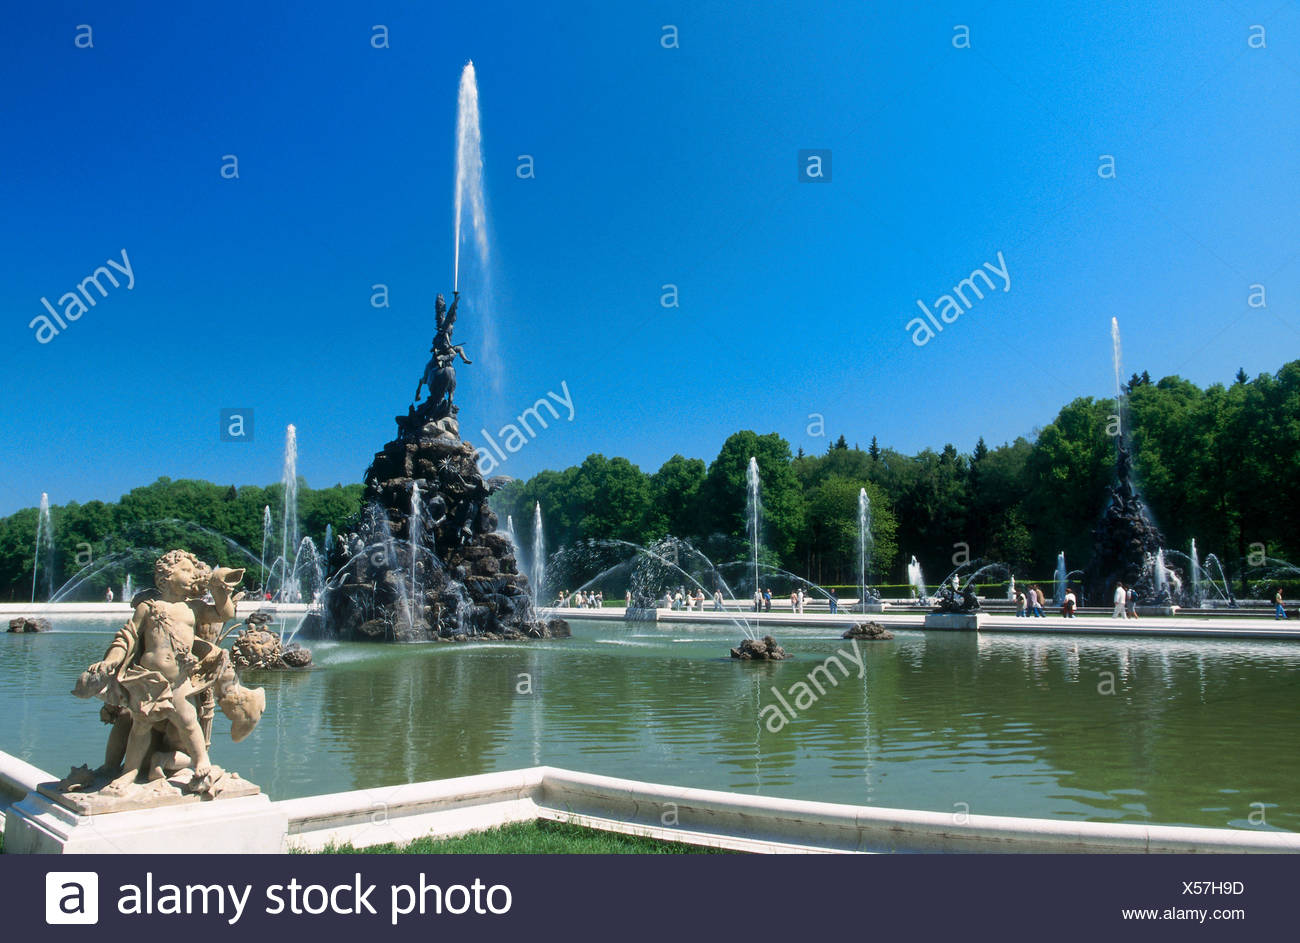 Reflection of trees in water, Herrenchiemsee Castle, Herreninsel, Bavaria, Germany - Stock Image